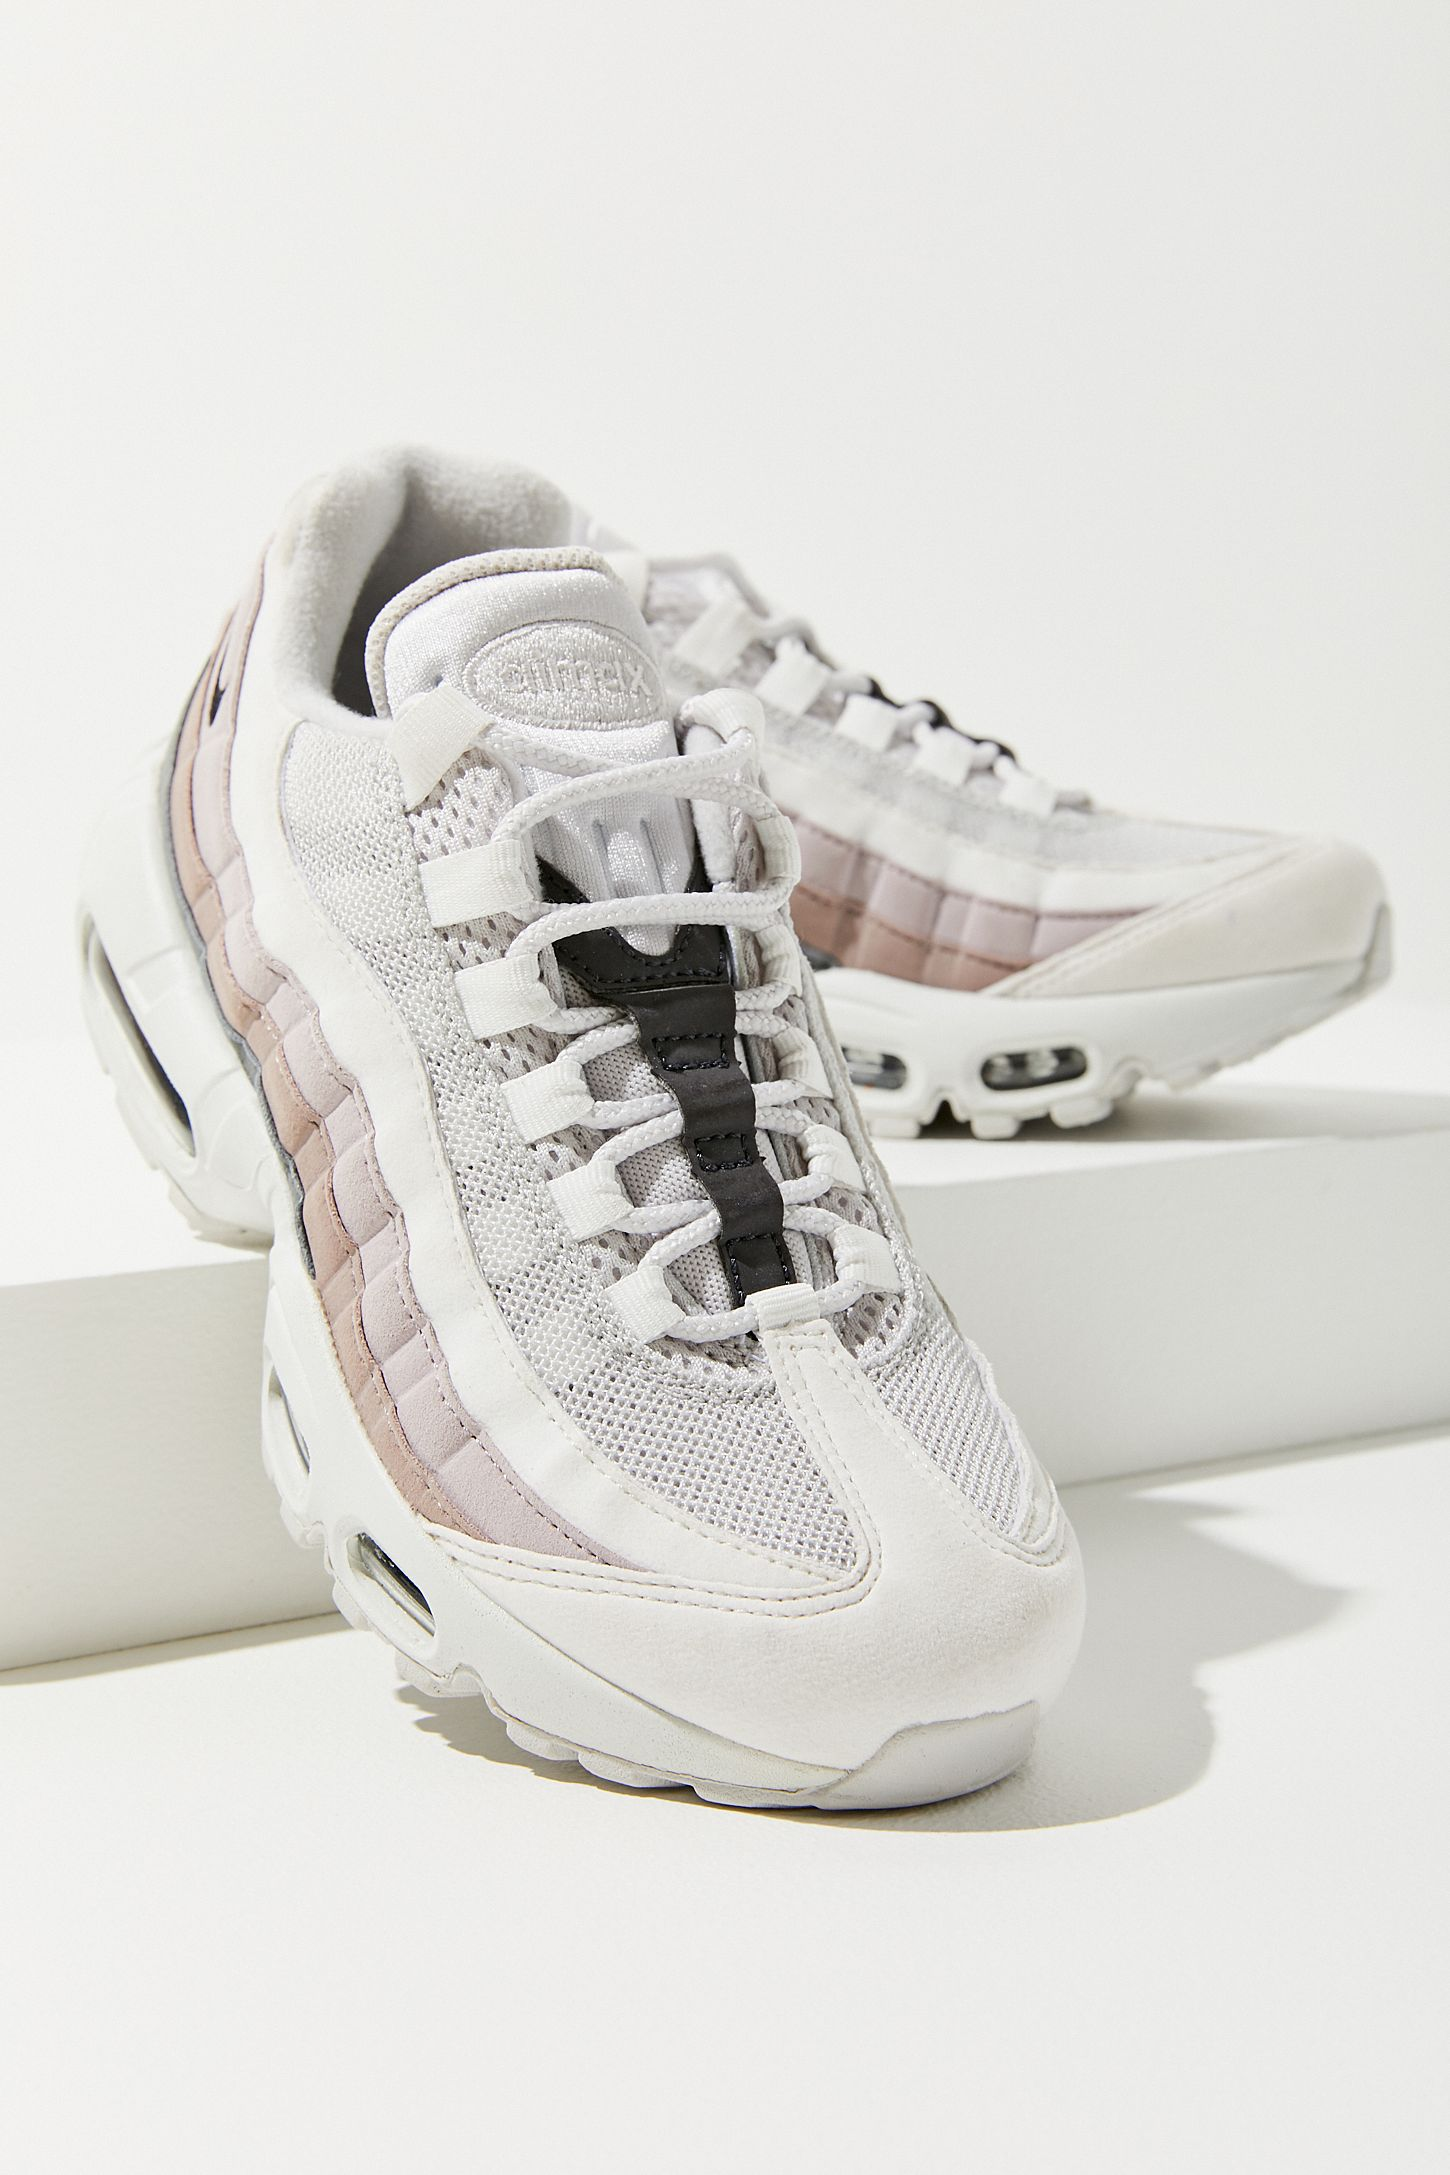 Nike Lifestyle Shoes Outlet Online Womens Nike Air Max 95